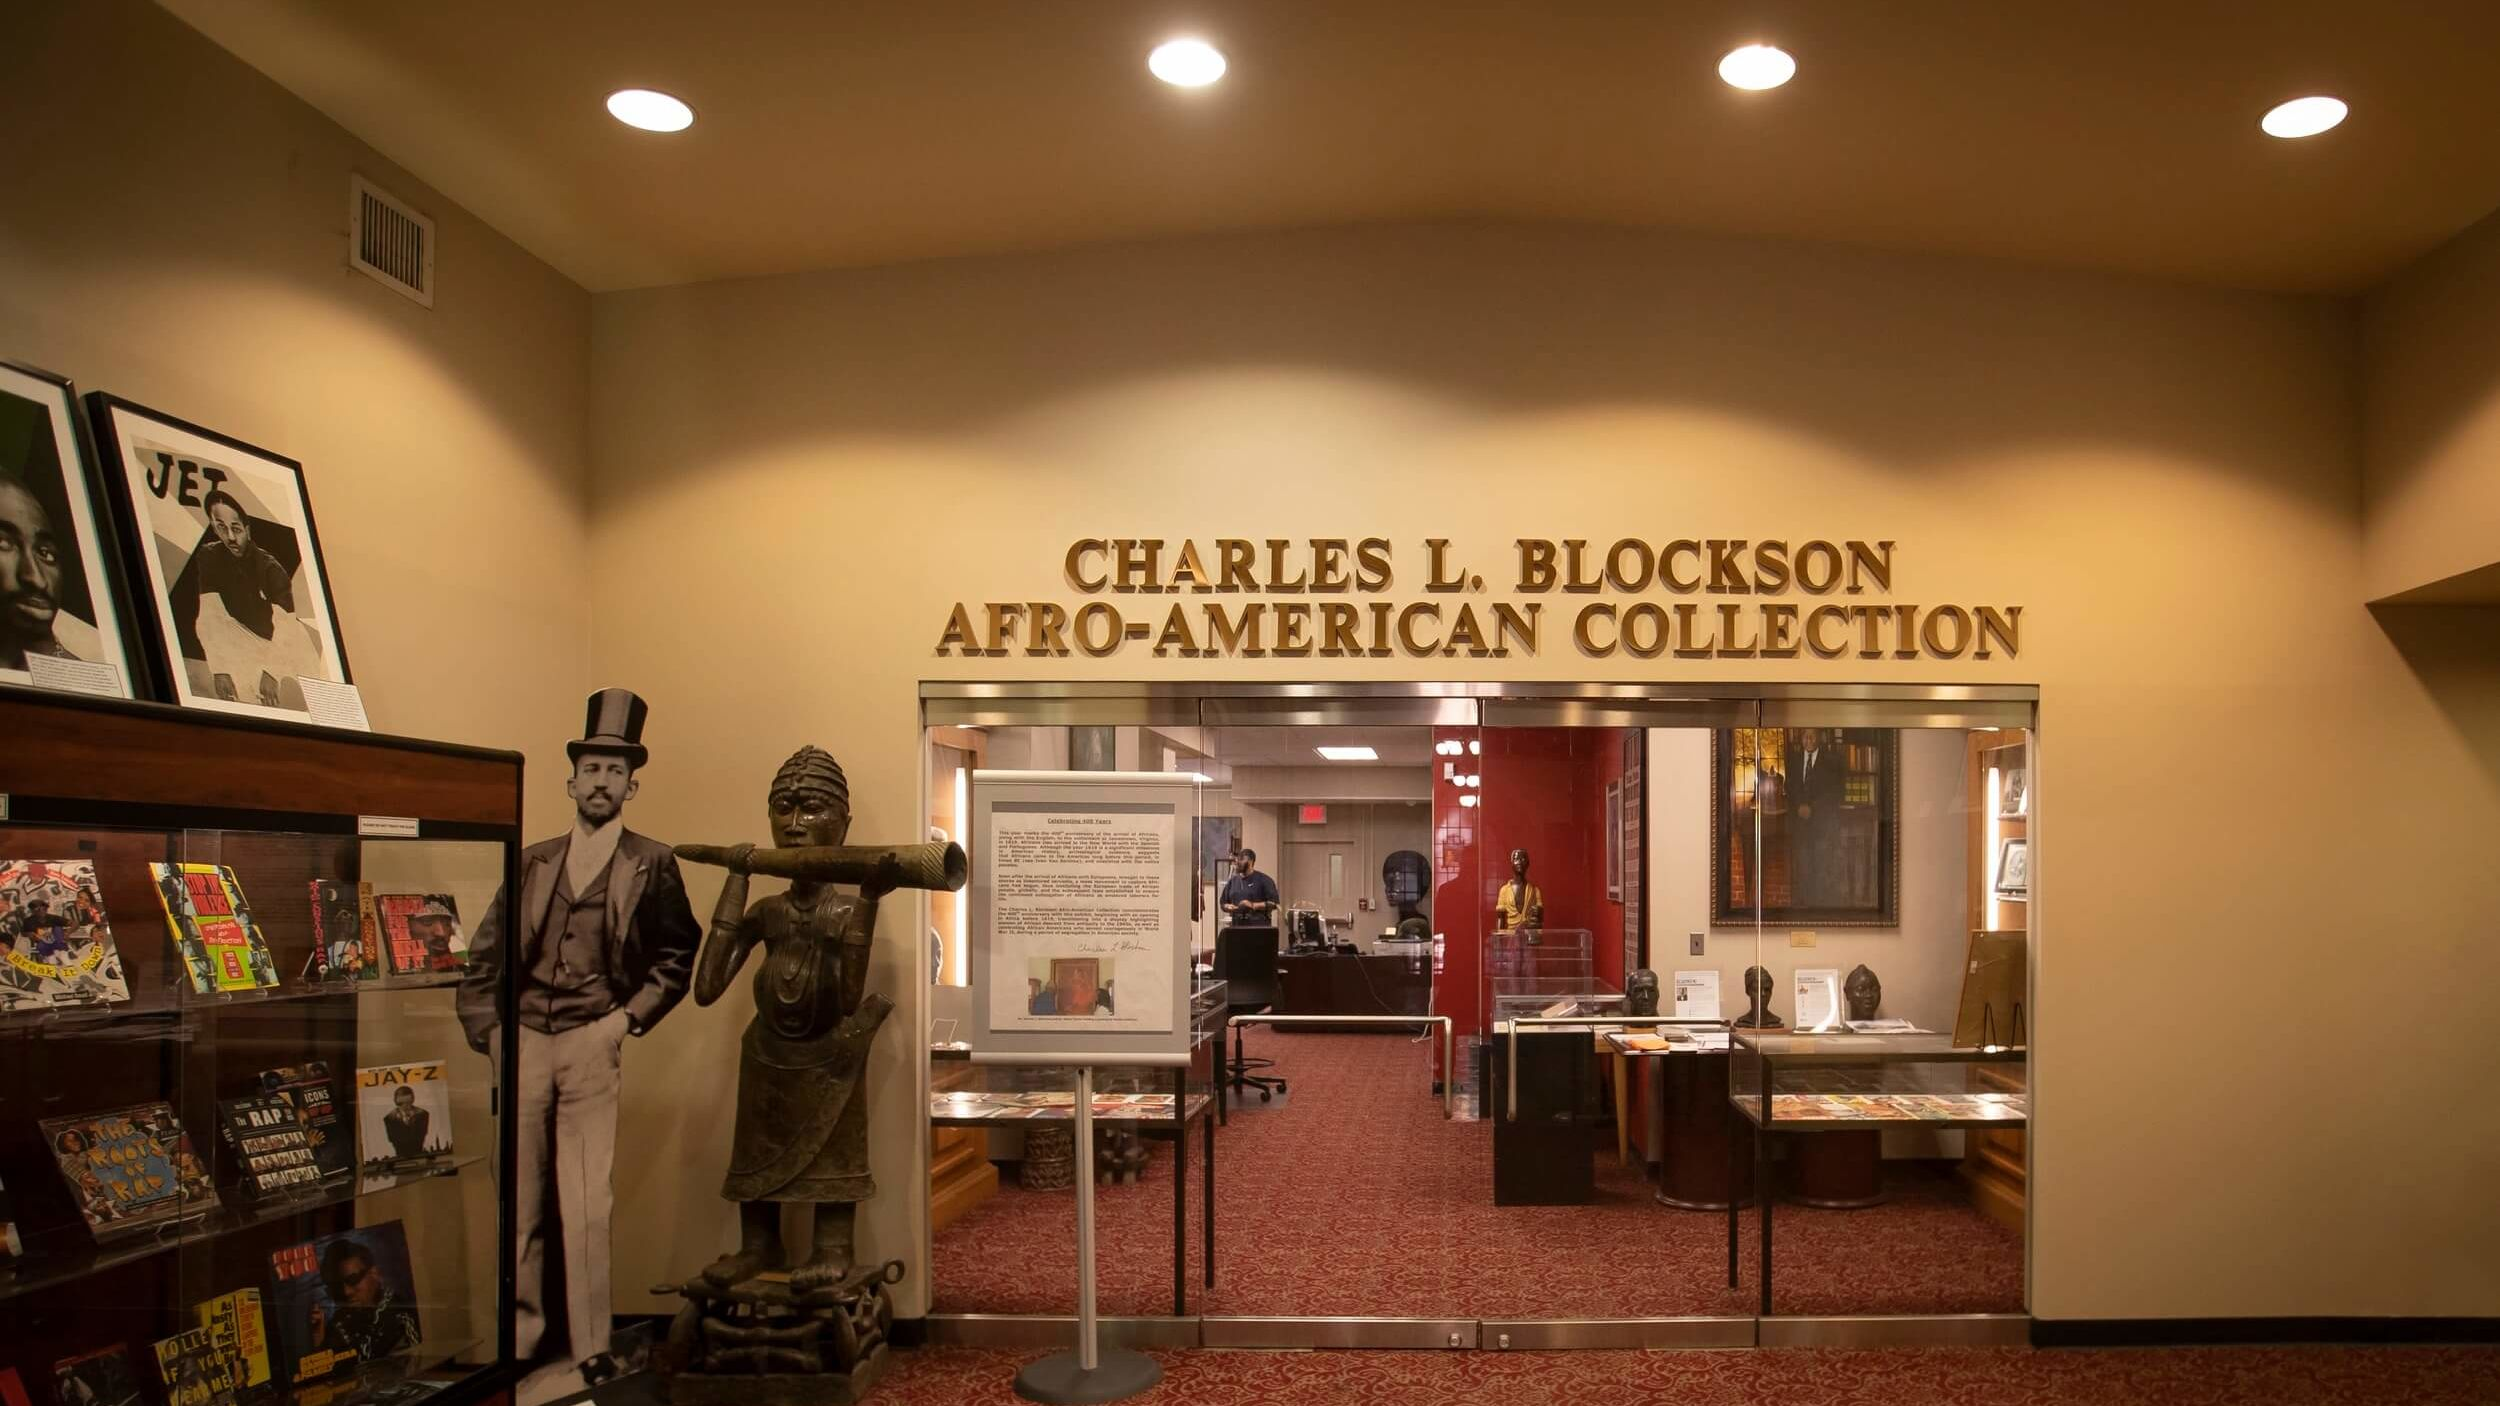 The entrance to the Charles L. Blockson Afro-American Collection